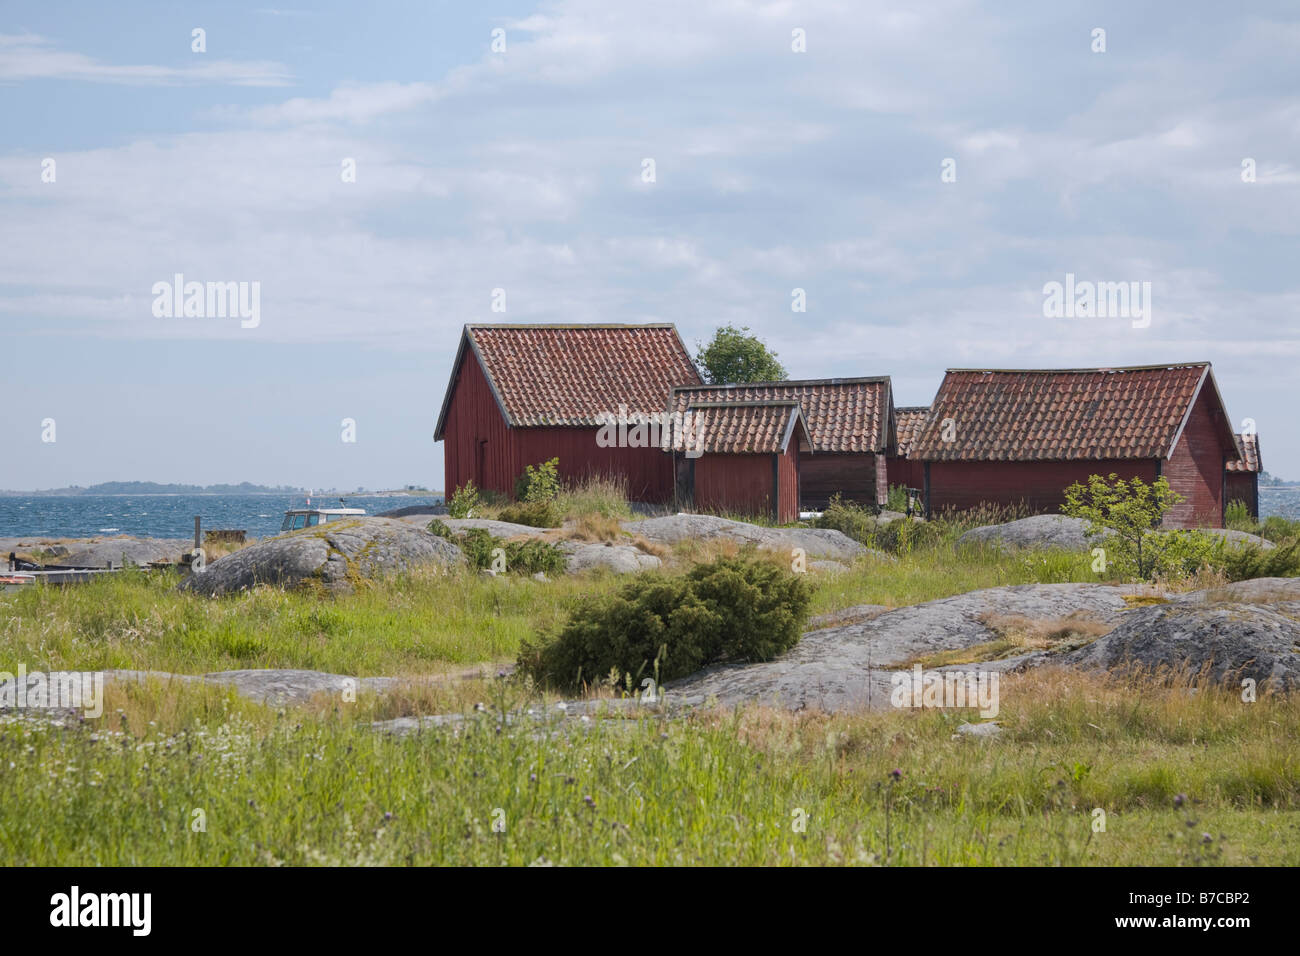 Traditional red painted fisherman's huts on the island of Svartloga in the 'Archipelago of Stockholm', - Stock Image